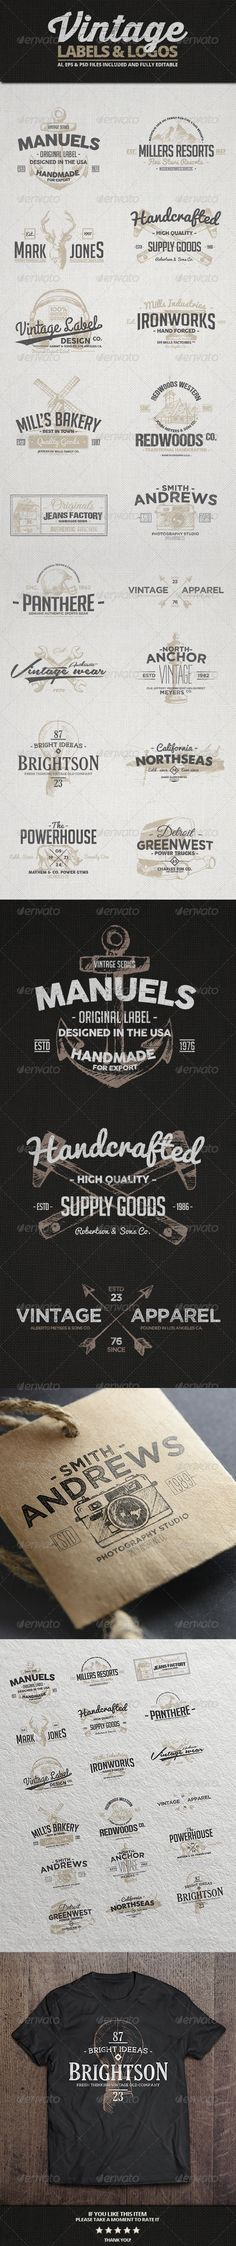 Vintage Labels & Logos Template | Buy and Download: http://graphicriver.net/item/vintage-labels-logos-vol3/8207558?WT.ac=category_thumb&WT.z_author=Alex_Zeppelin&ref=ksioks